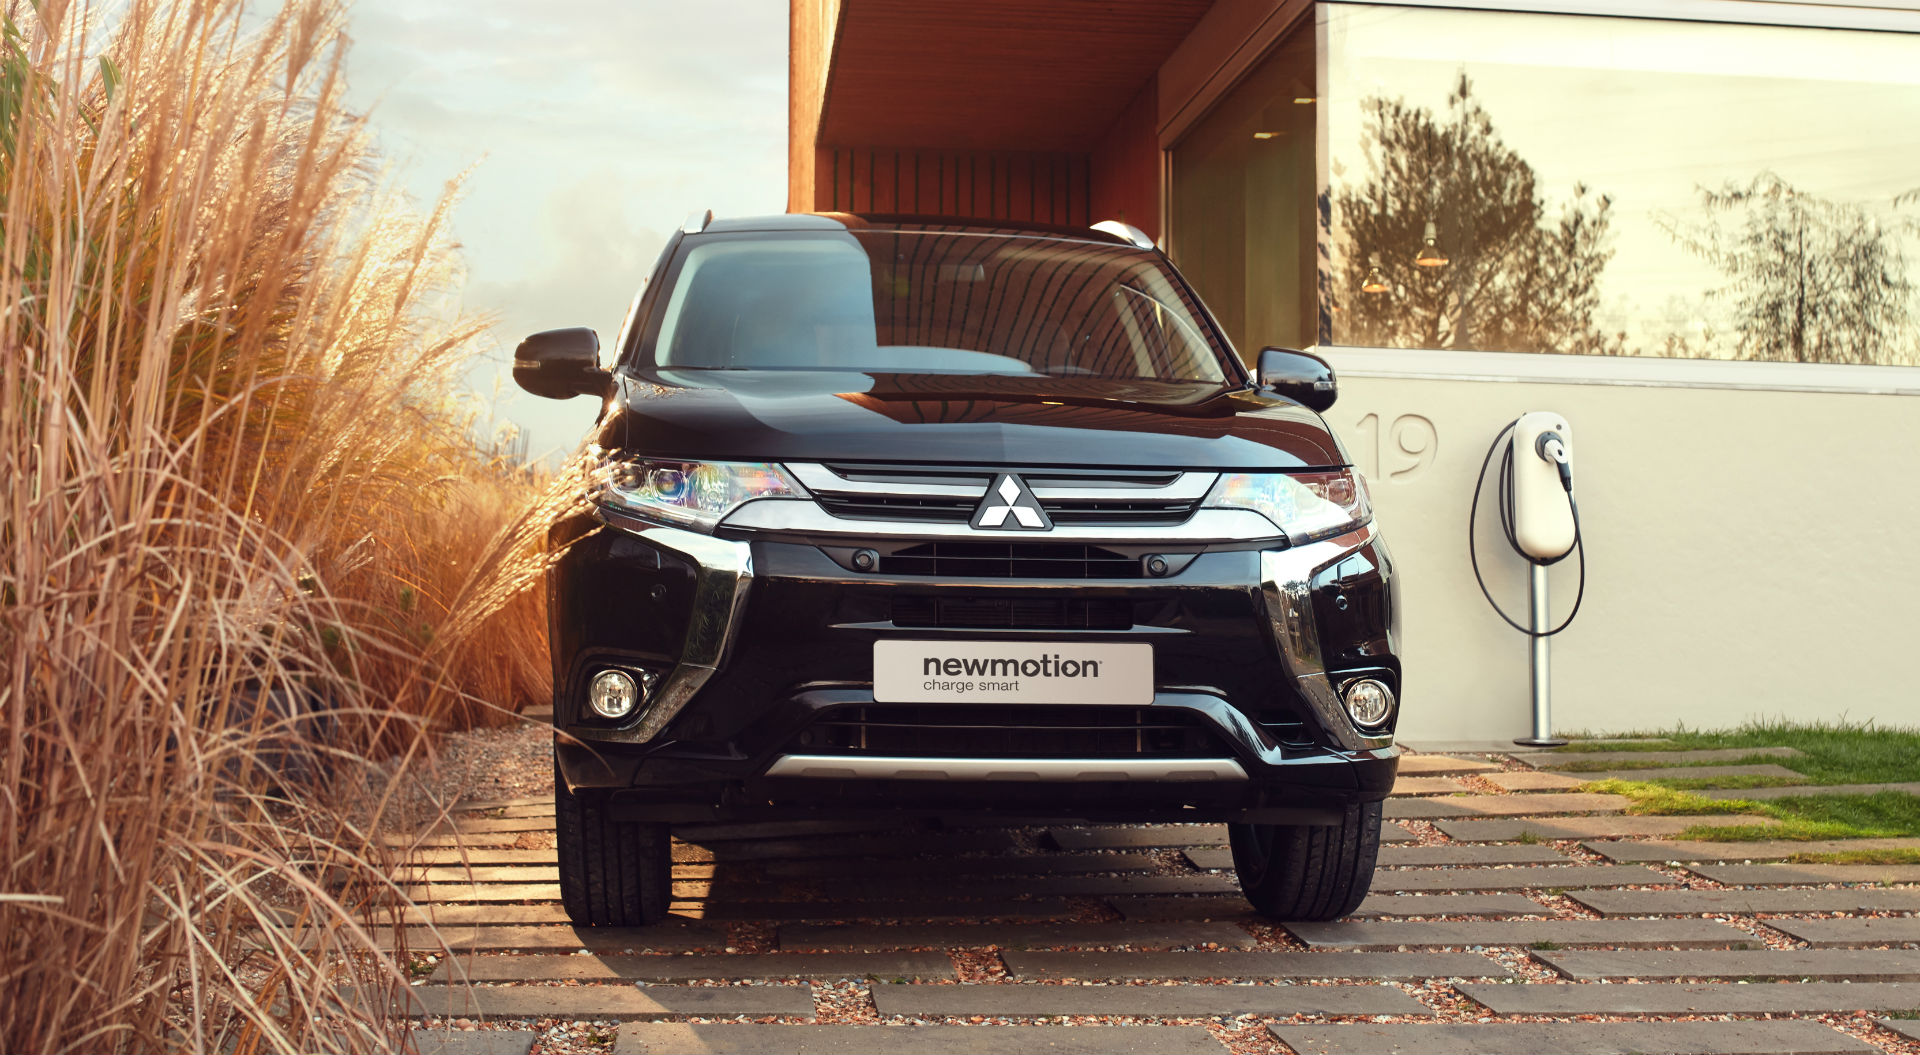 Mitsubishi Outlander PHEV 2017 - The New Motion